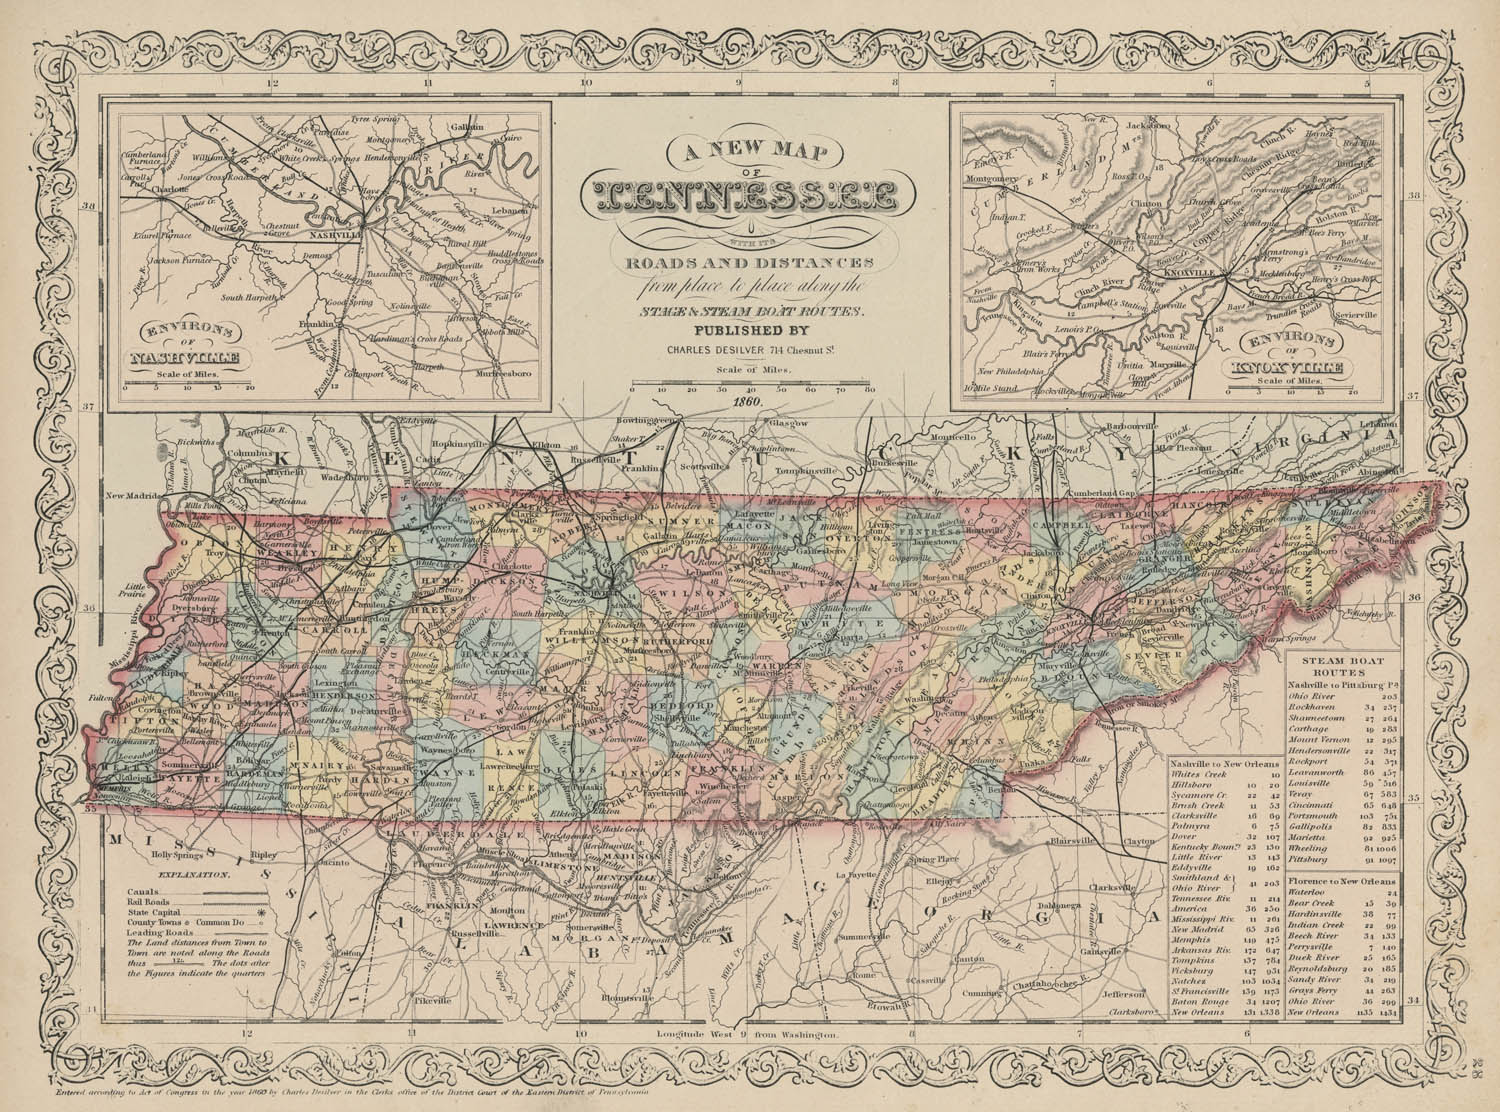 Map Of Tennessee With Its Roads Shades Of Gray And Blue - Map of tennessee